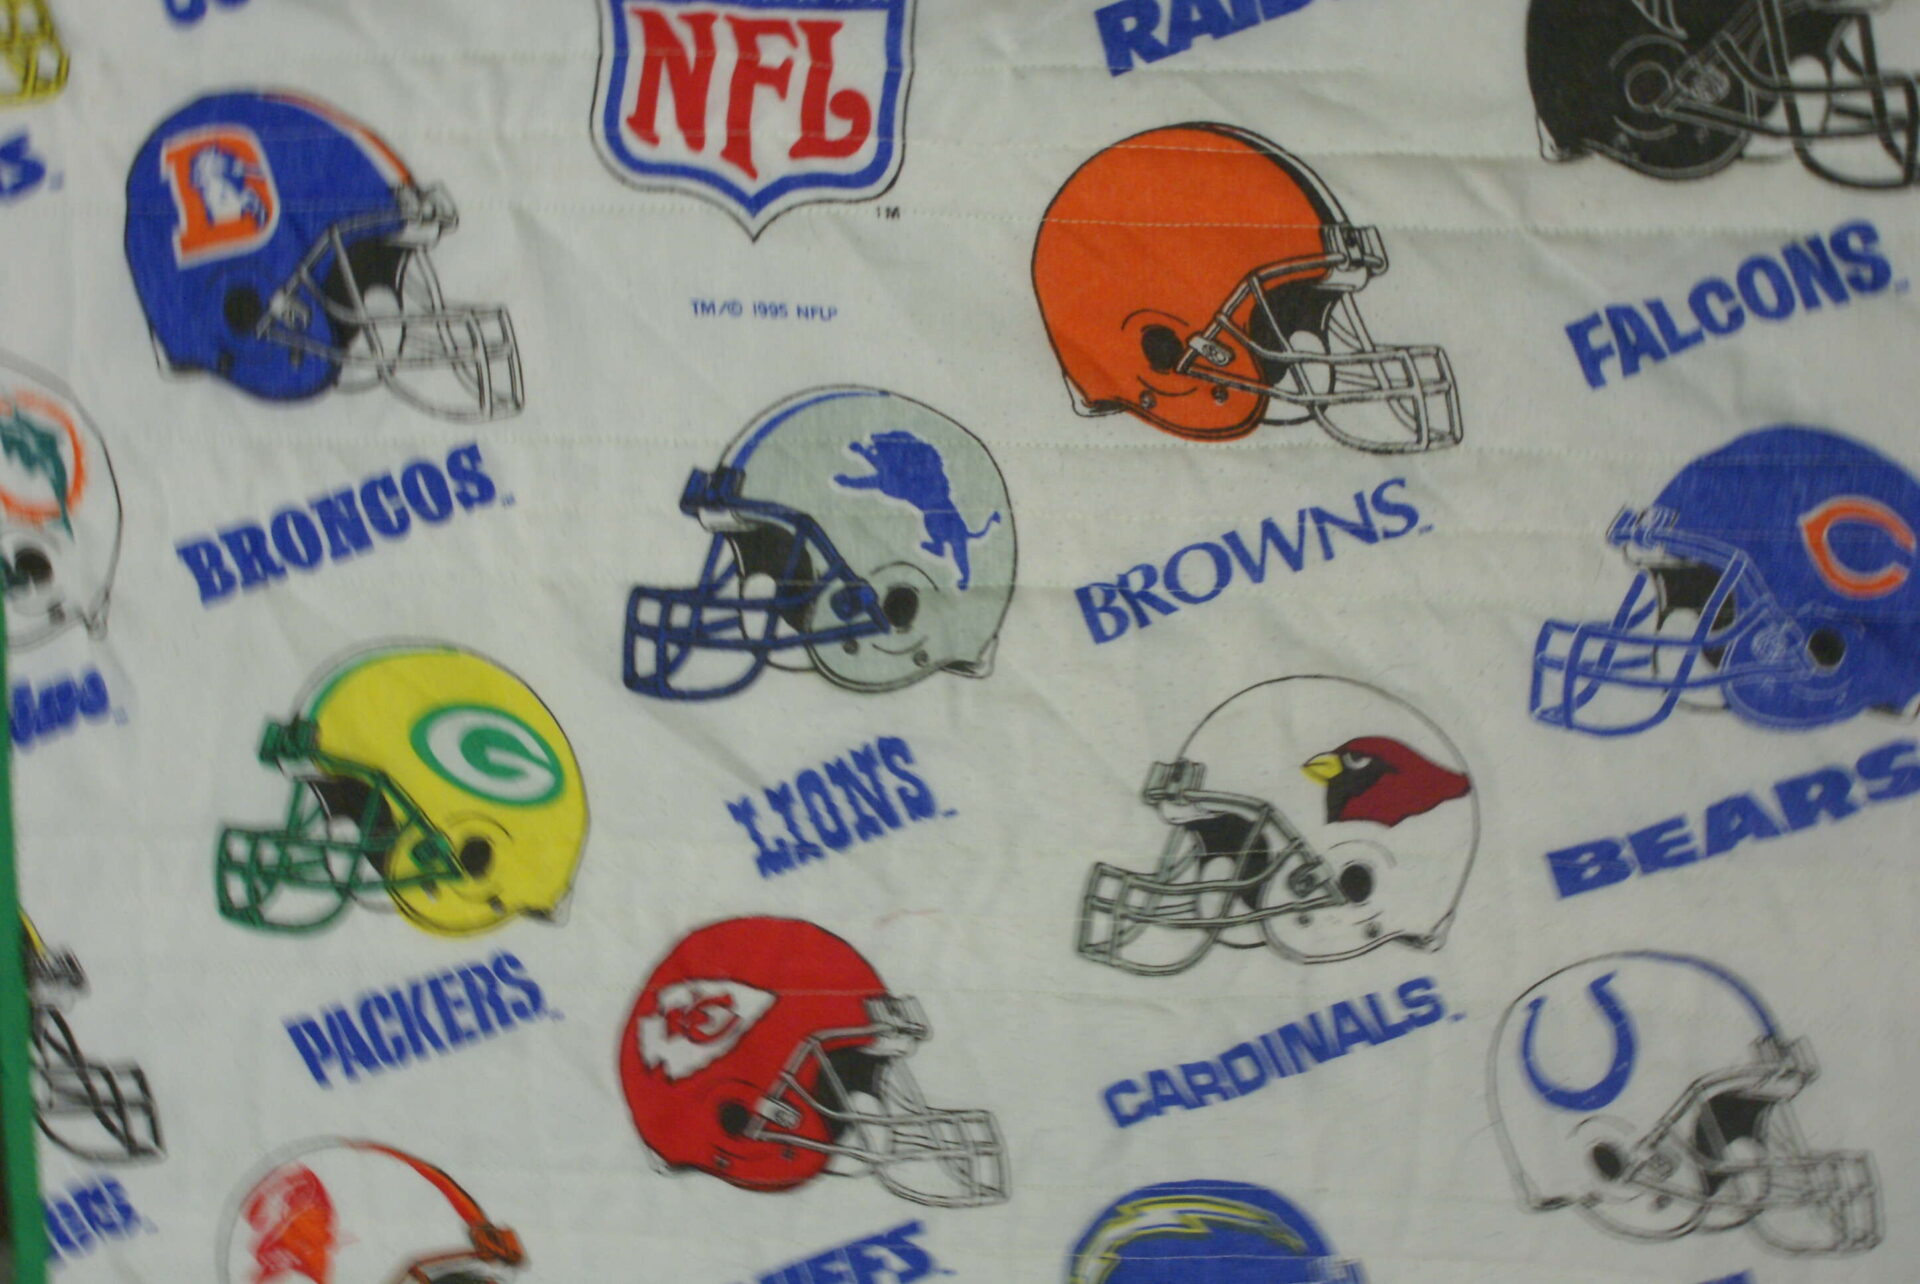 Football Team Logo With Name Football Team Names All of The